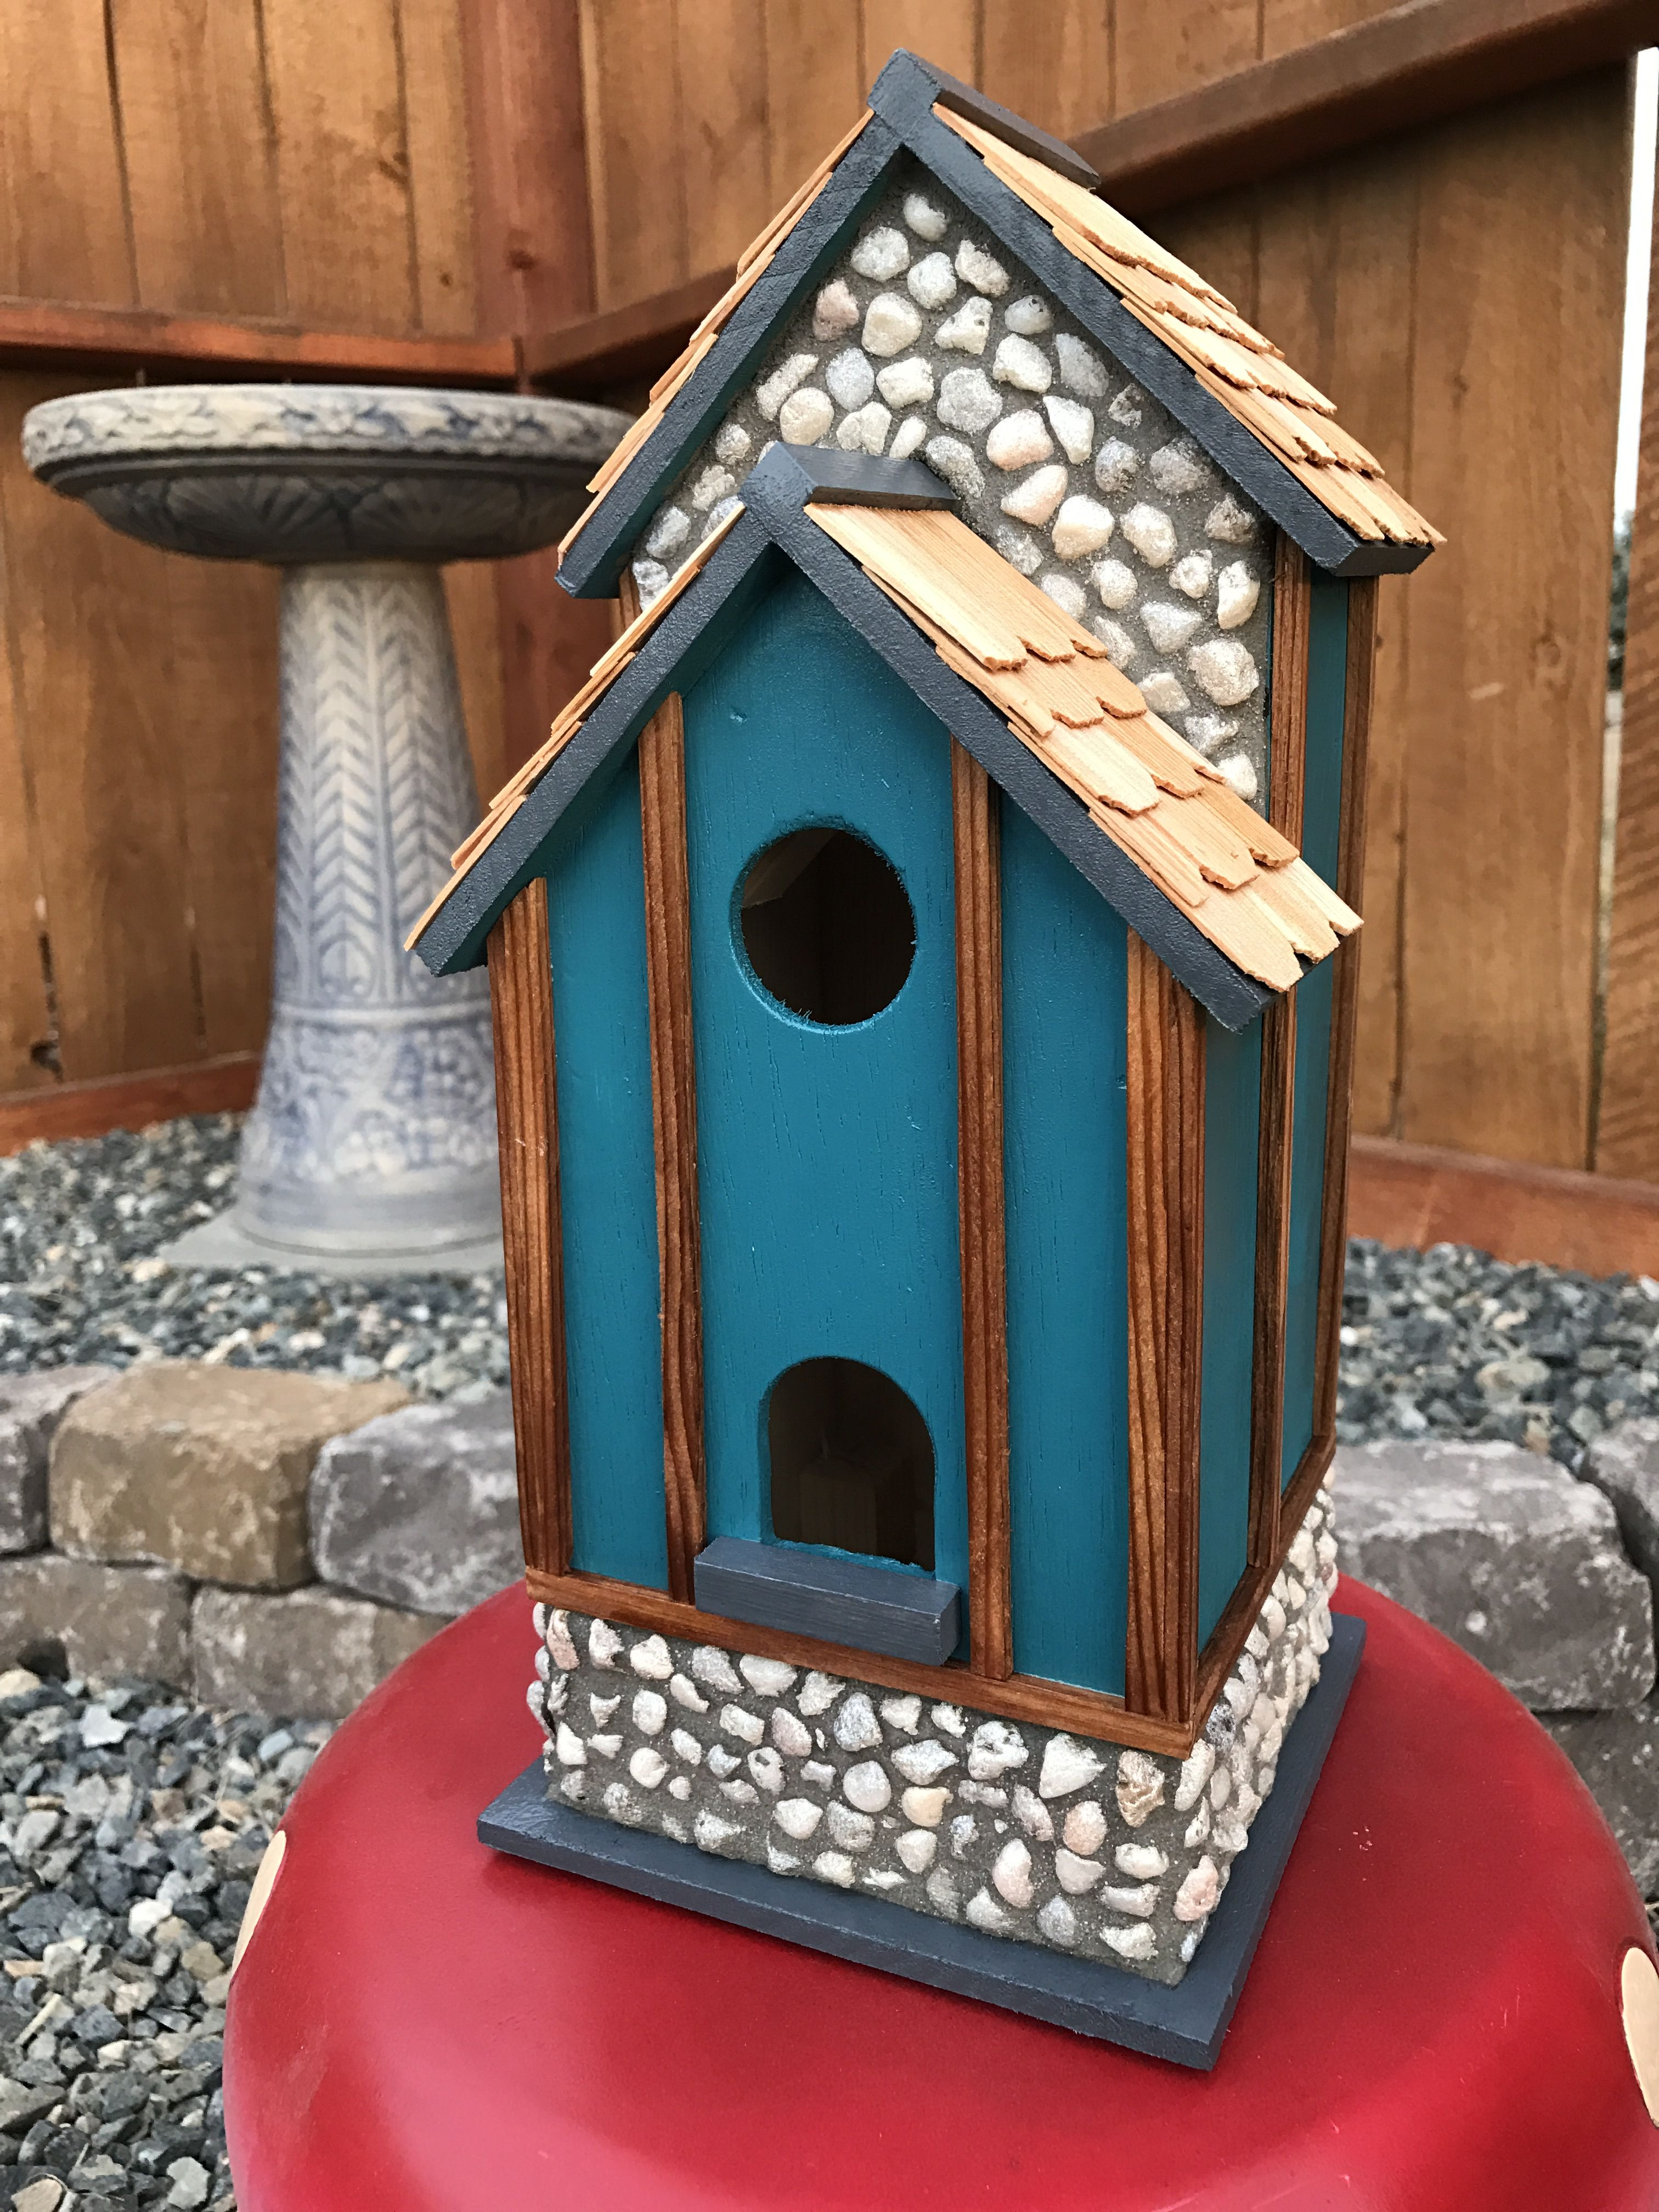 Best Grouted Stone Birdhouse With Cedar Shingles And Trim 400 x 300